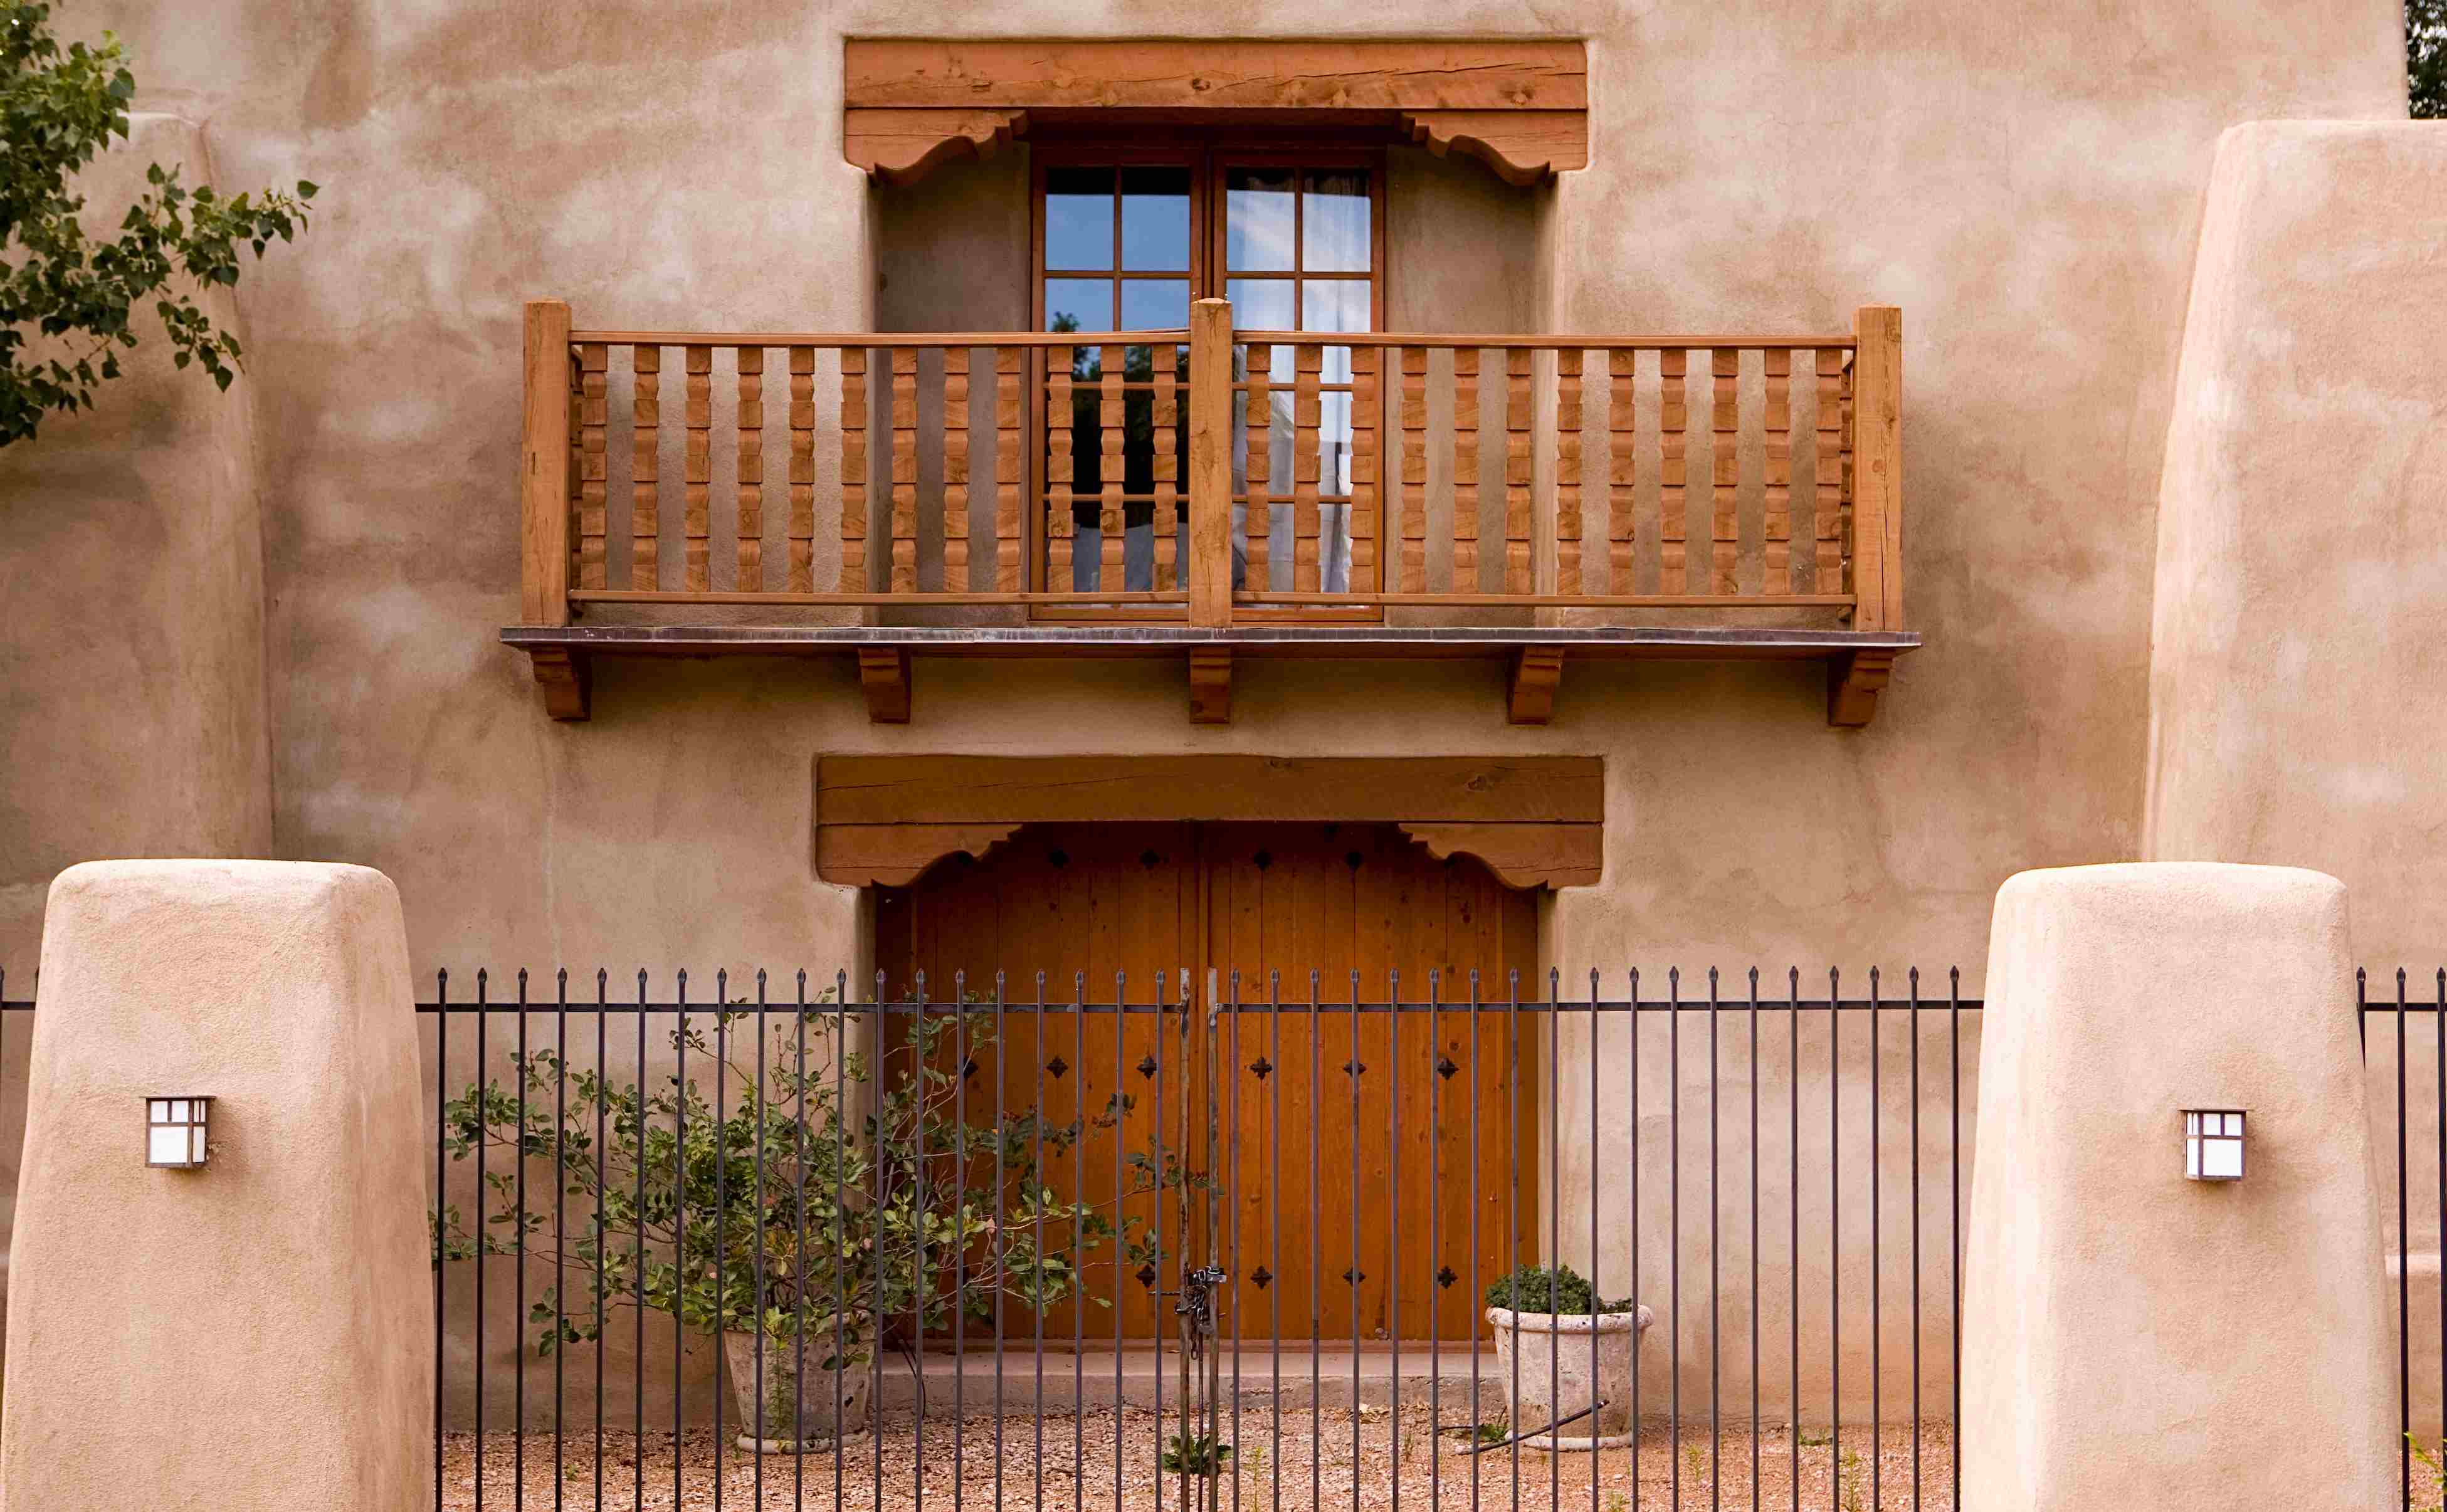 USA property like this home in New Mexico can exhibit vernacular features, making them an interesting choice for expats.